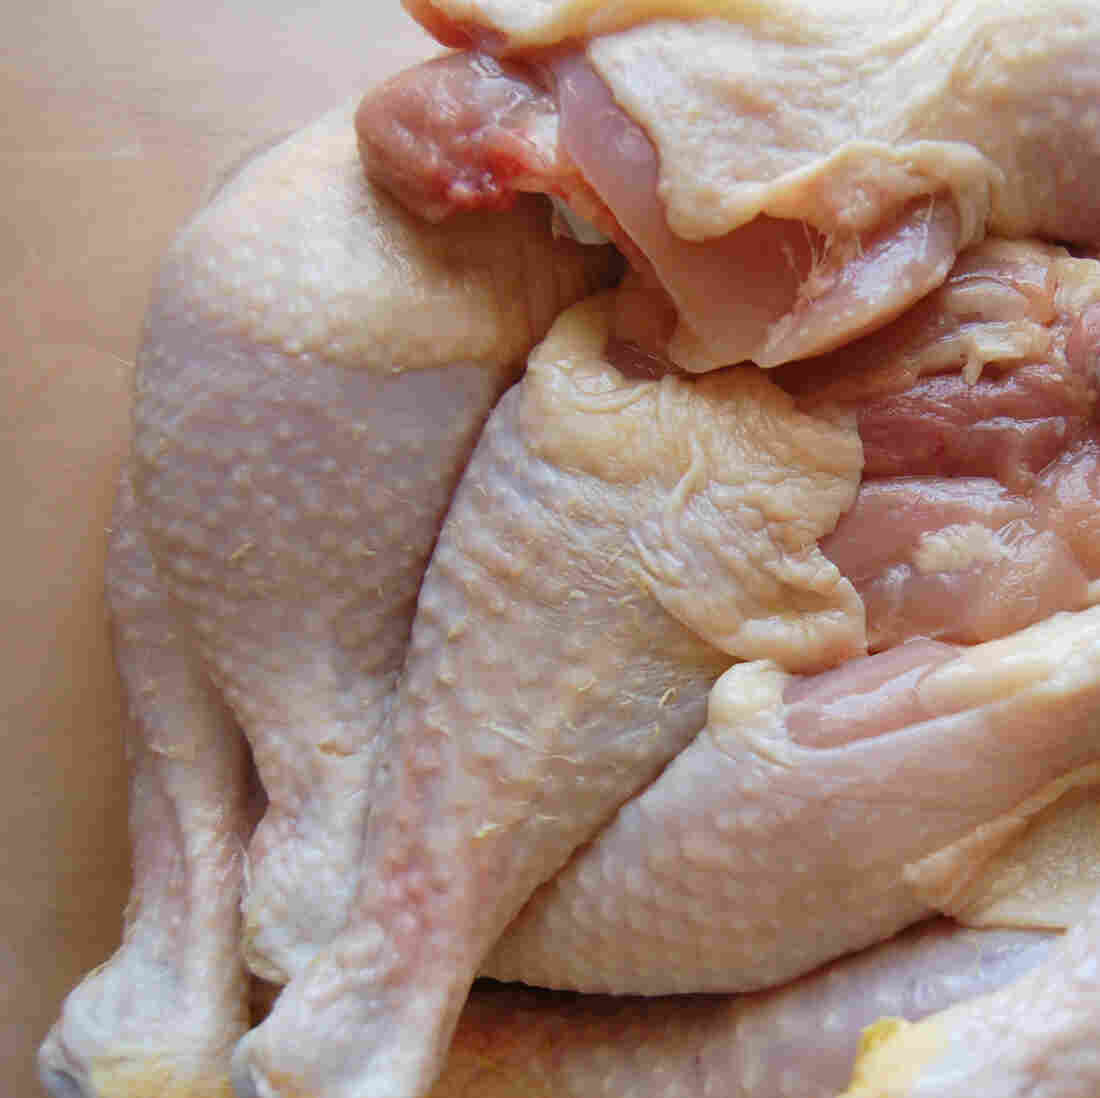 About a quarter of the chicken parts we buy are tainted with salmonella, according to USDA tests.